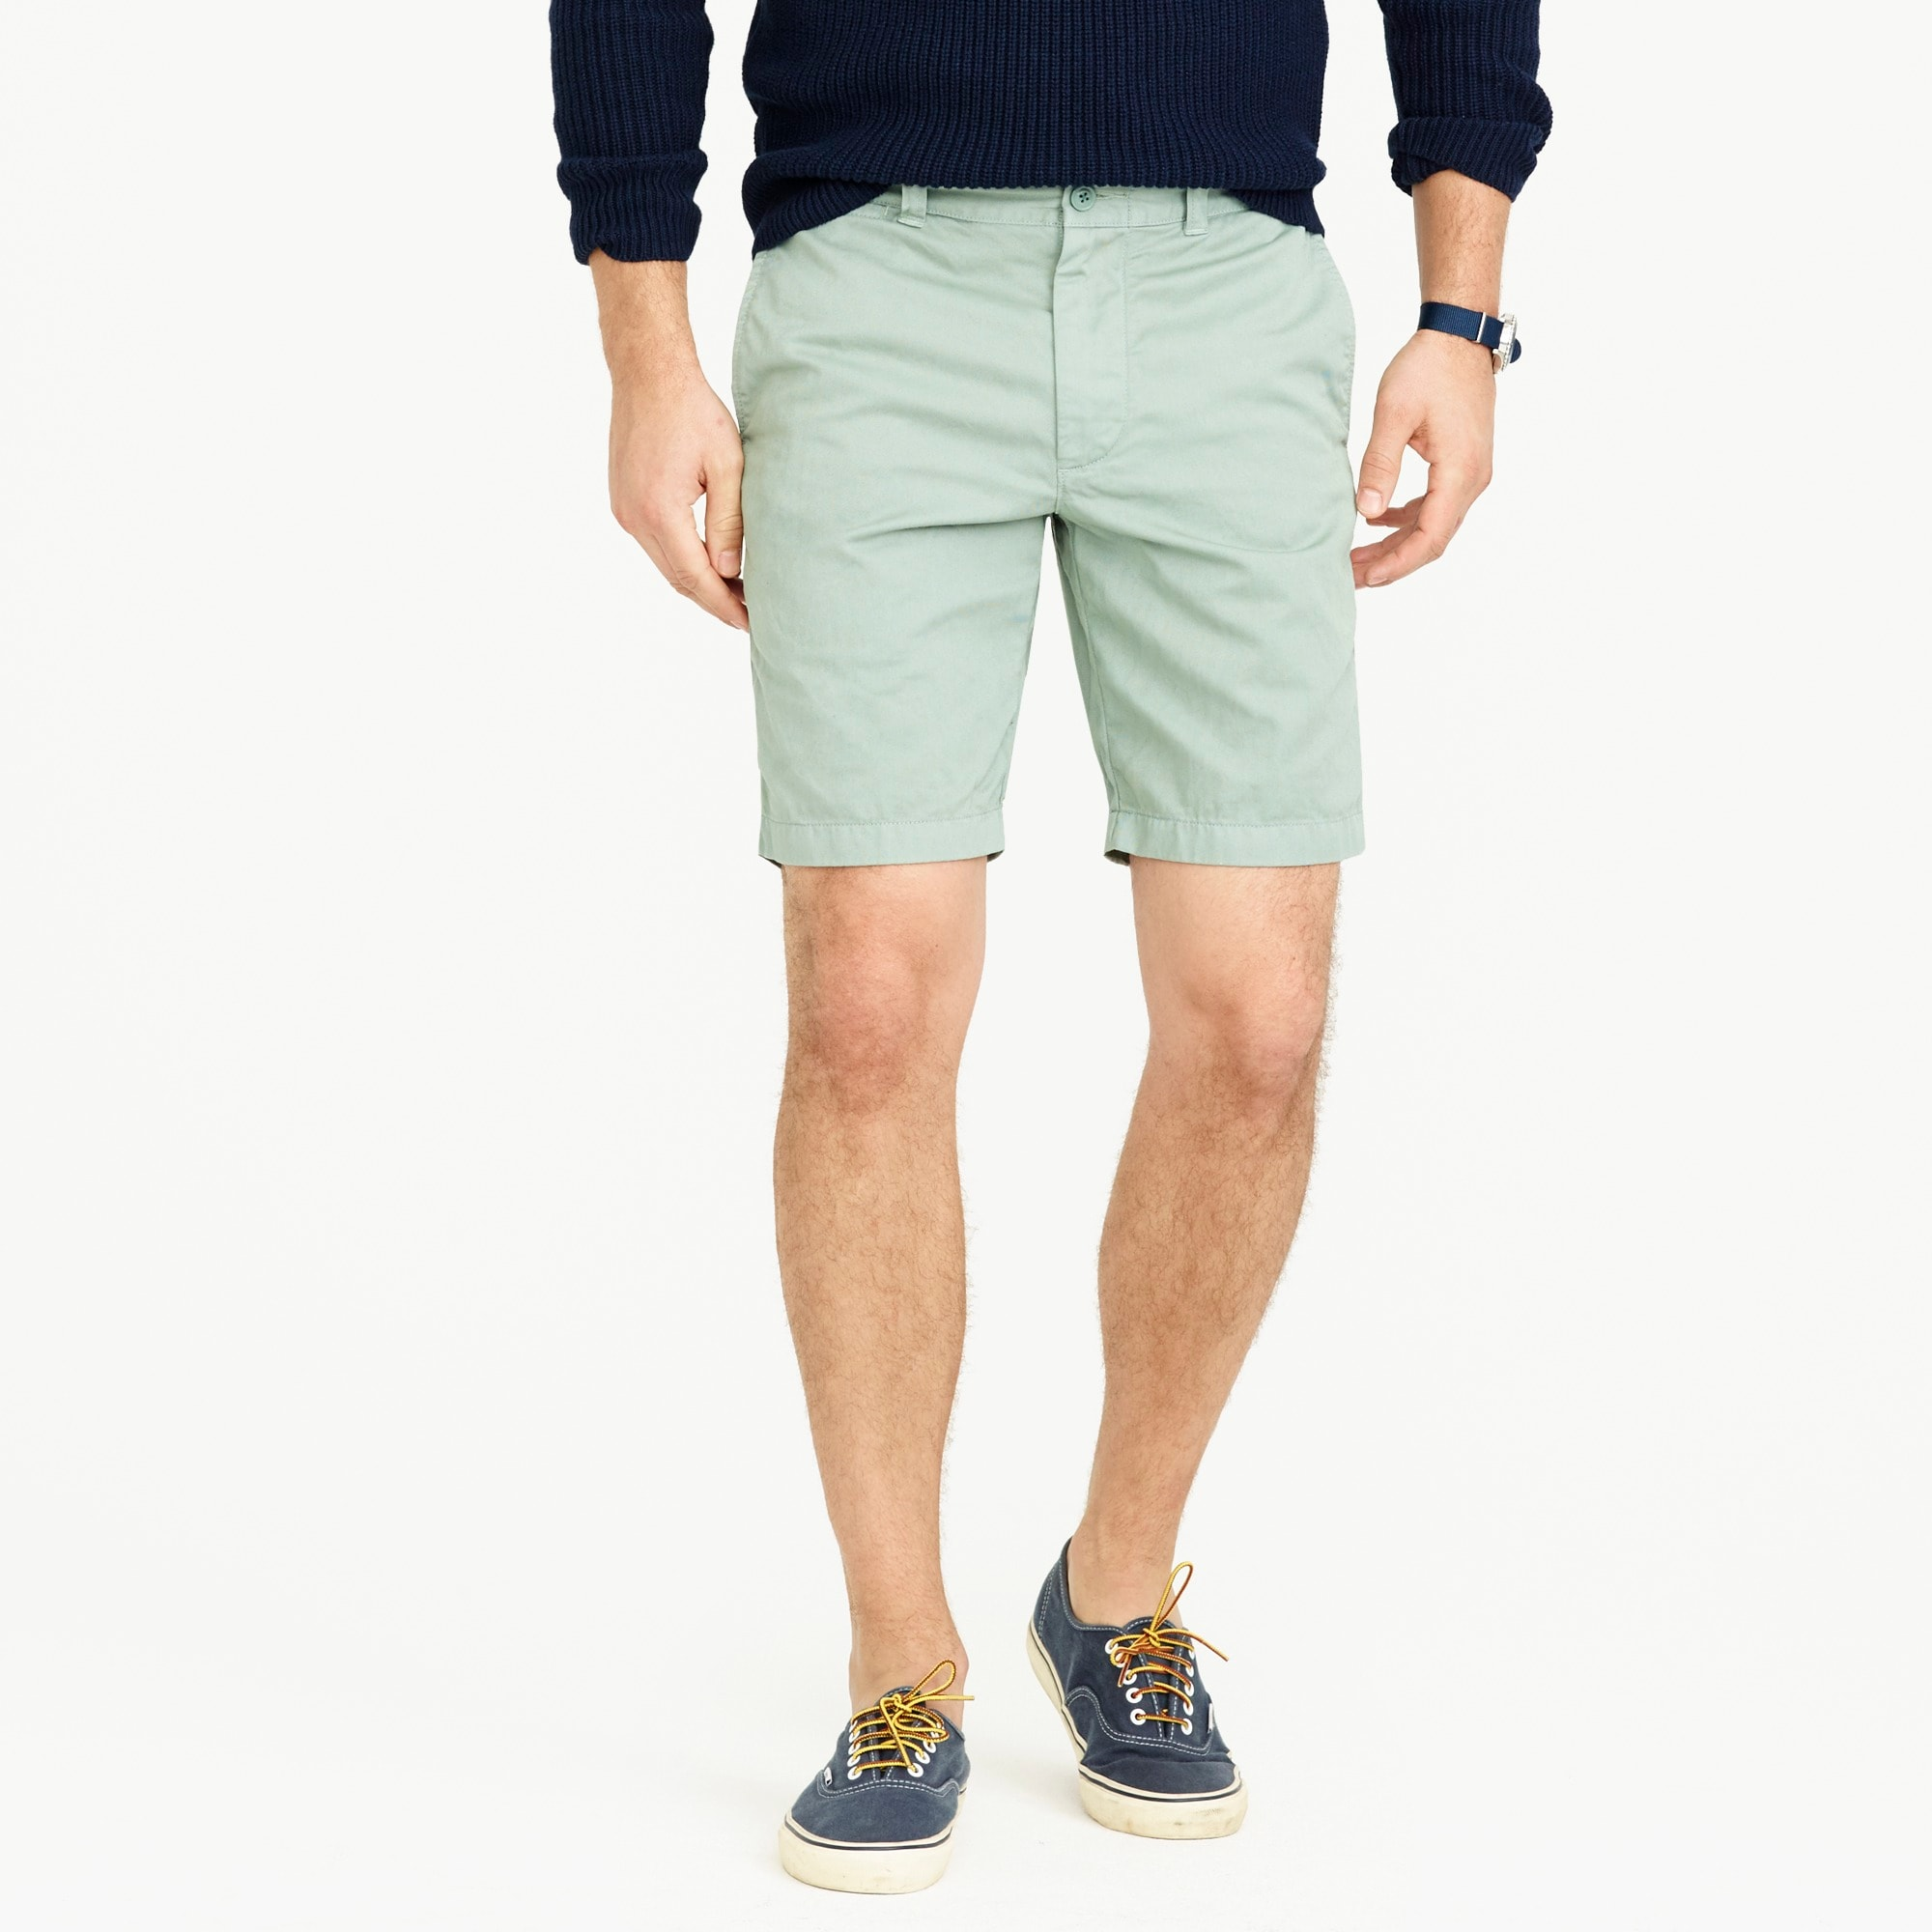 "9"" short in garment-dyed cotton : men's shorts"